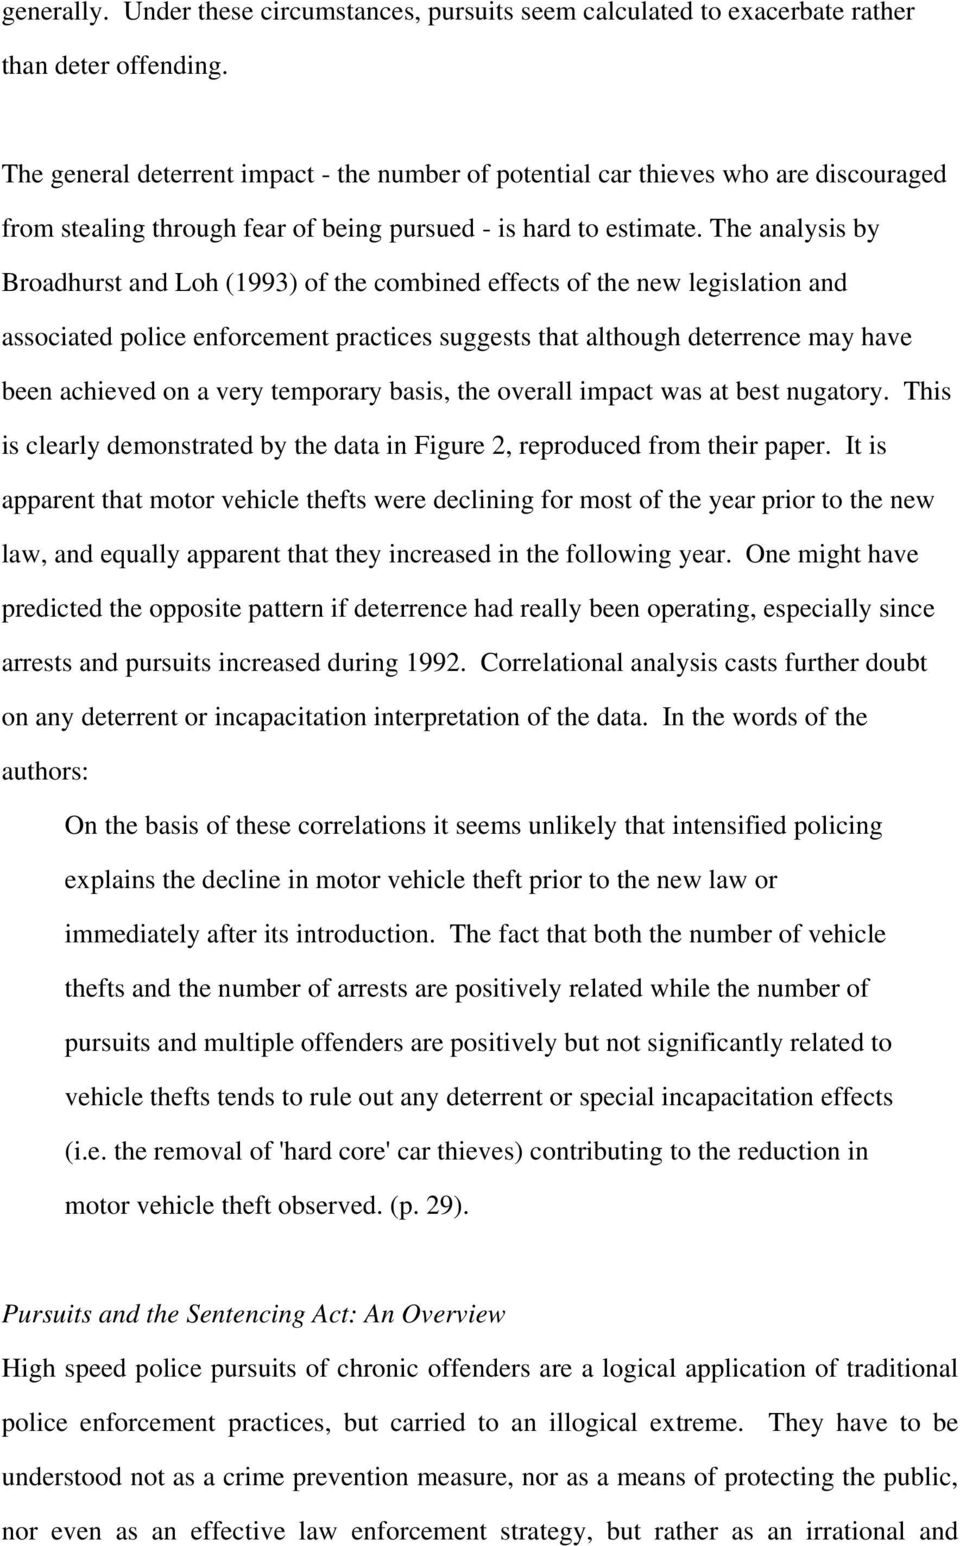 The analysis by Broadhurst and Loh (1993) of the combined effects of the new legislation and associated police enforcement practices suggests that although deterrence may have been achieved on a very